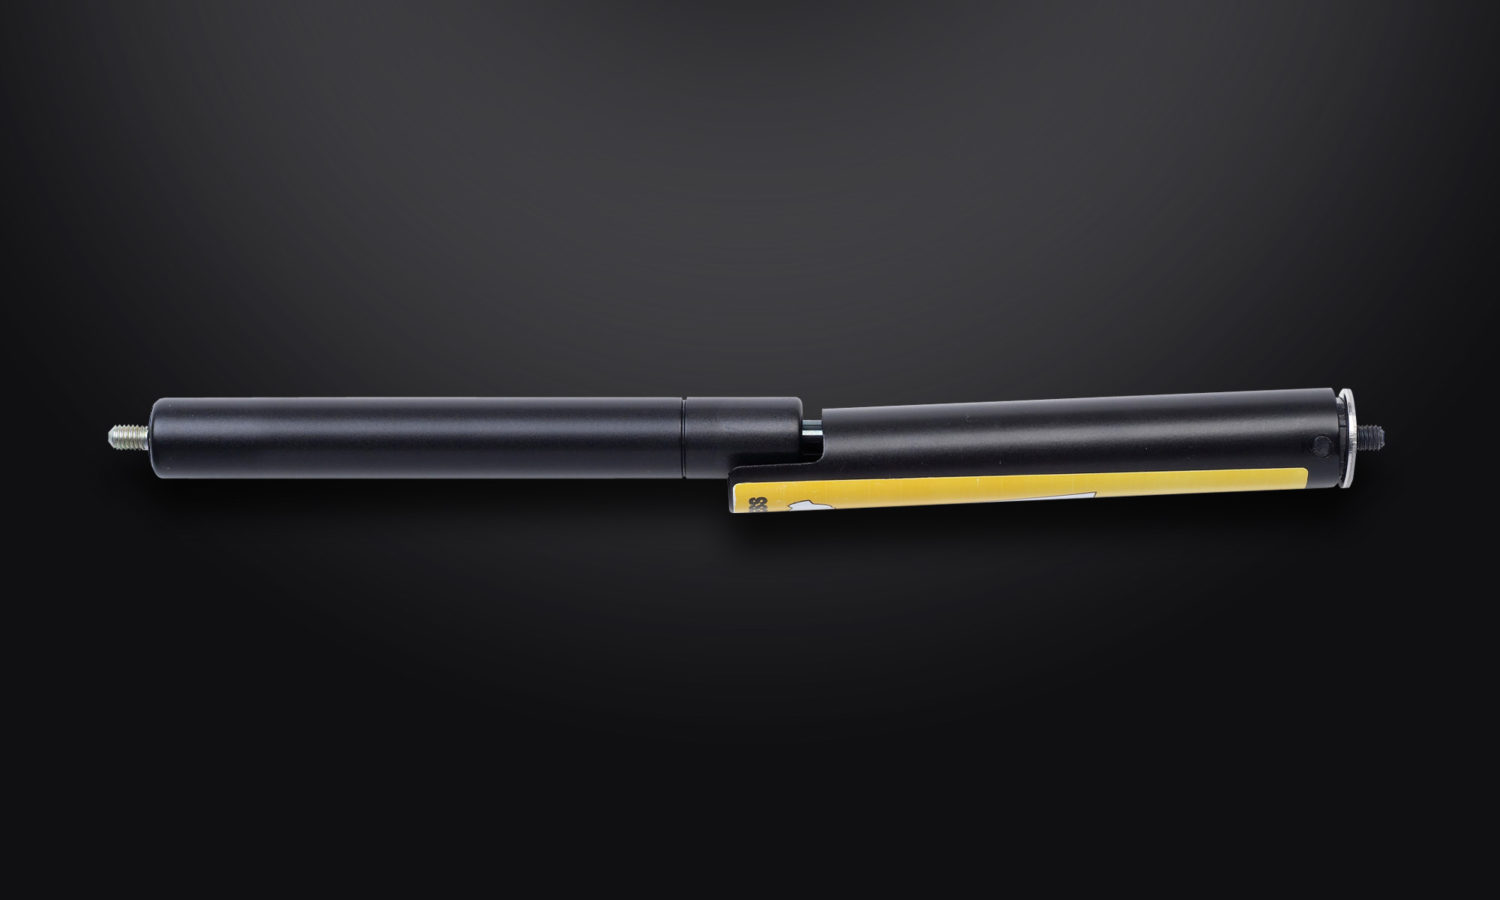 Camloc Motion Control - econoloc black and yellow strut